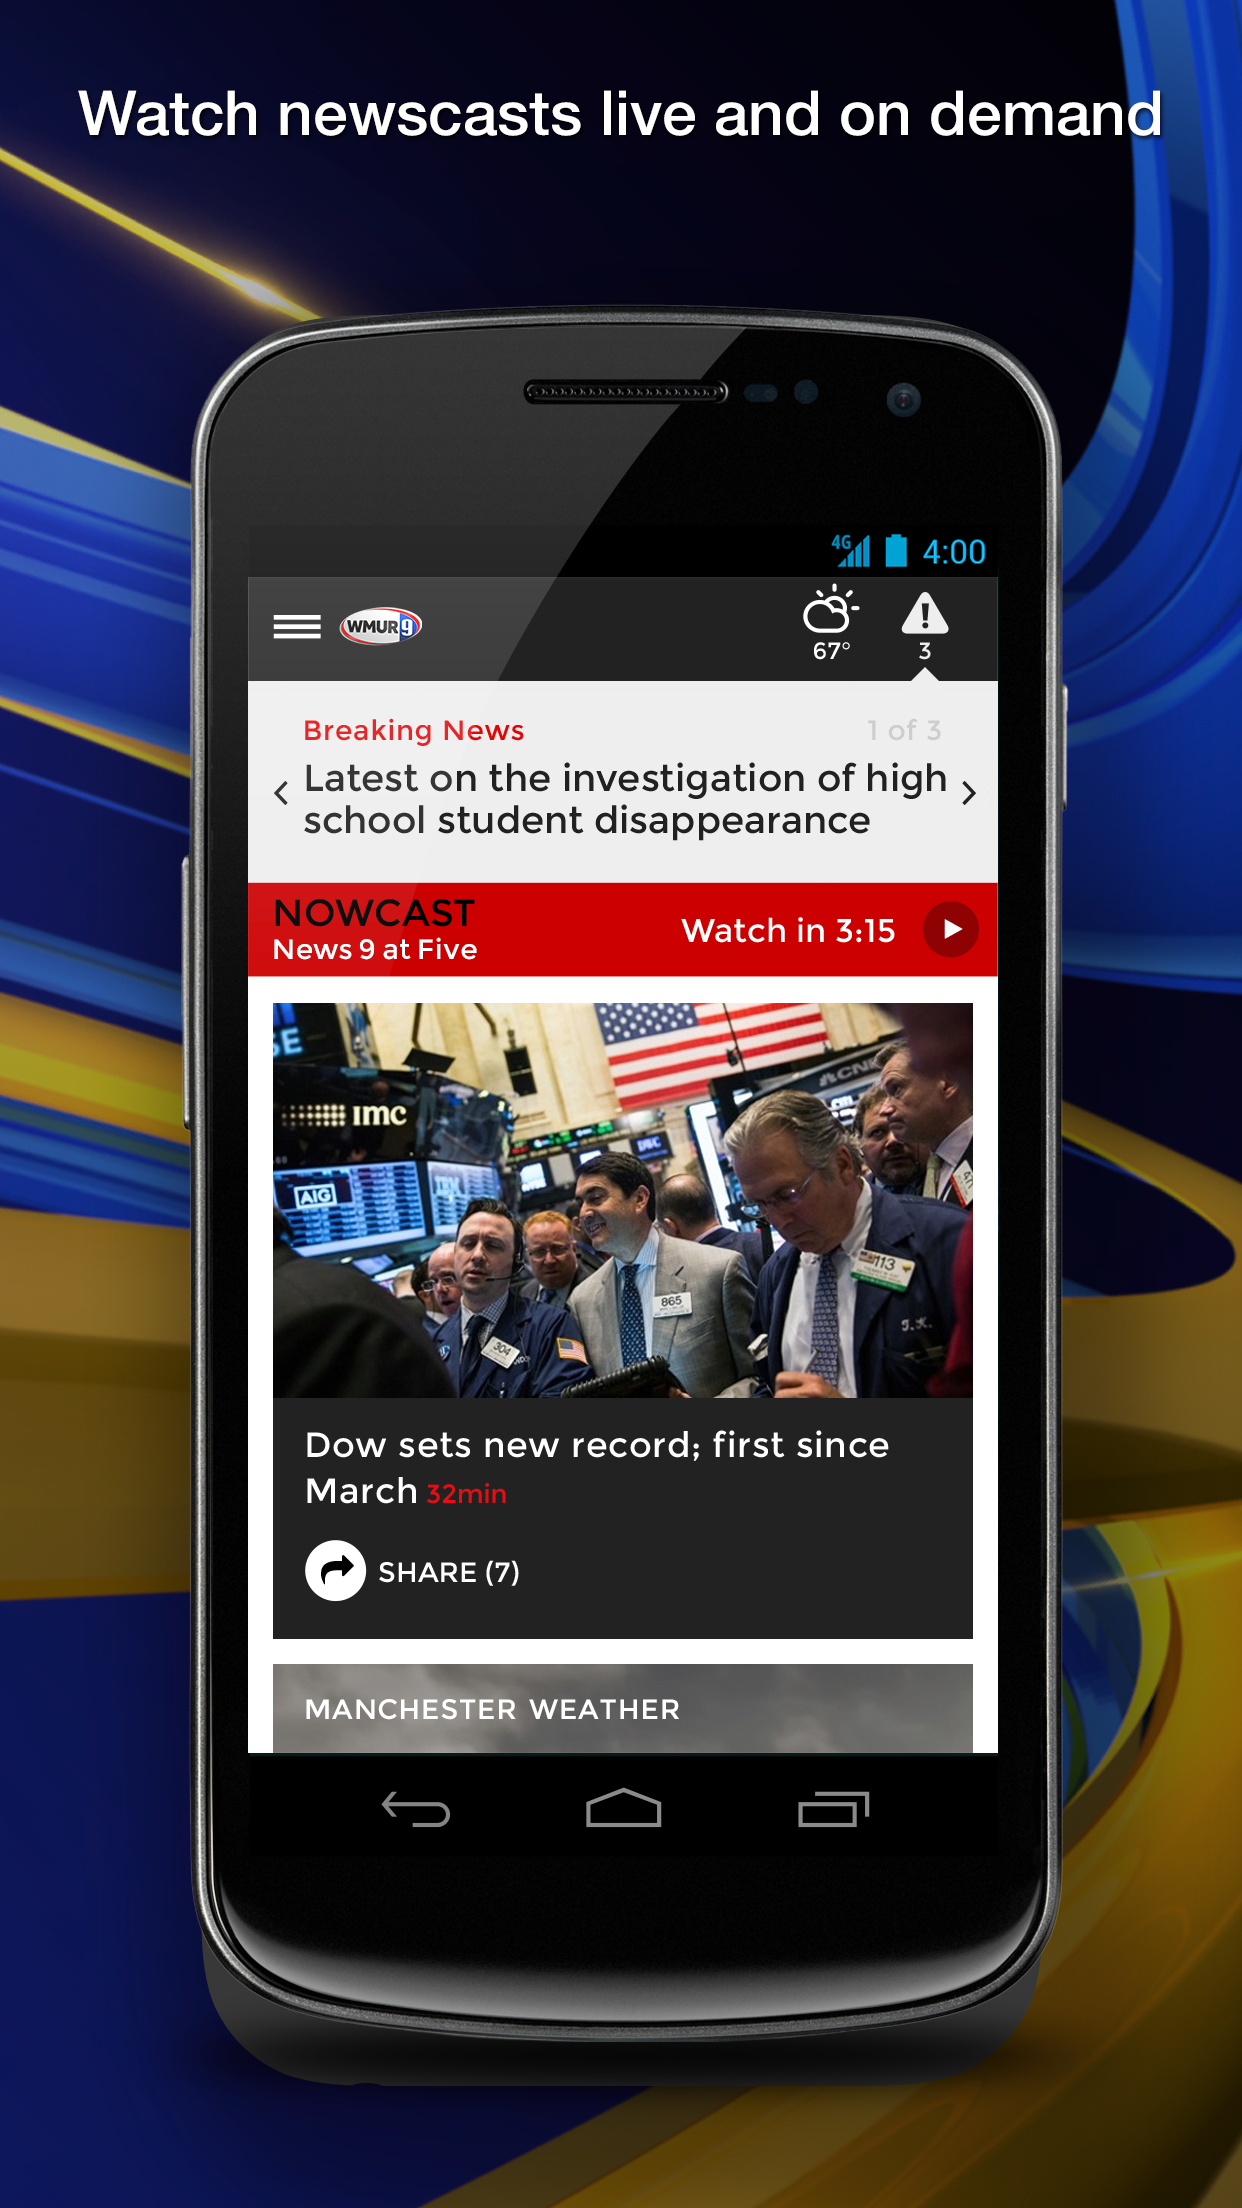 WMUR News 9 - NH News, Weather (Android) reviews at Android